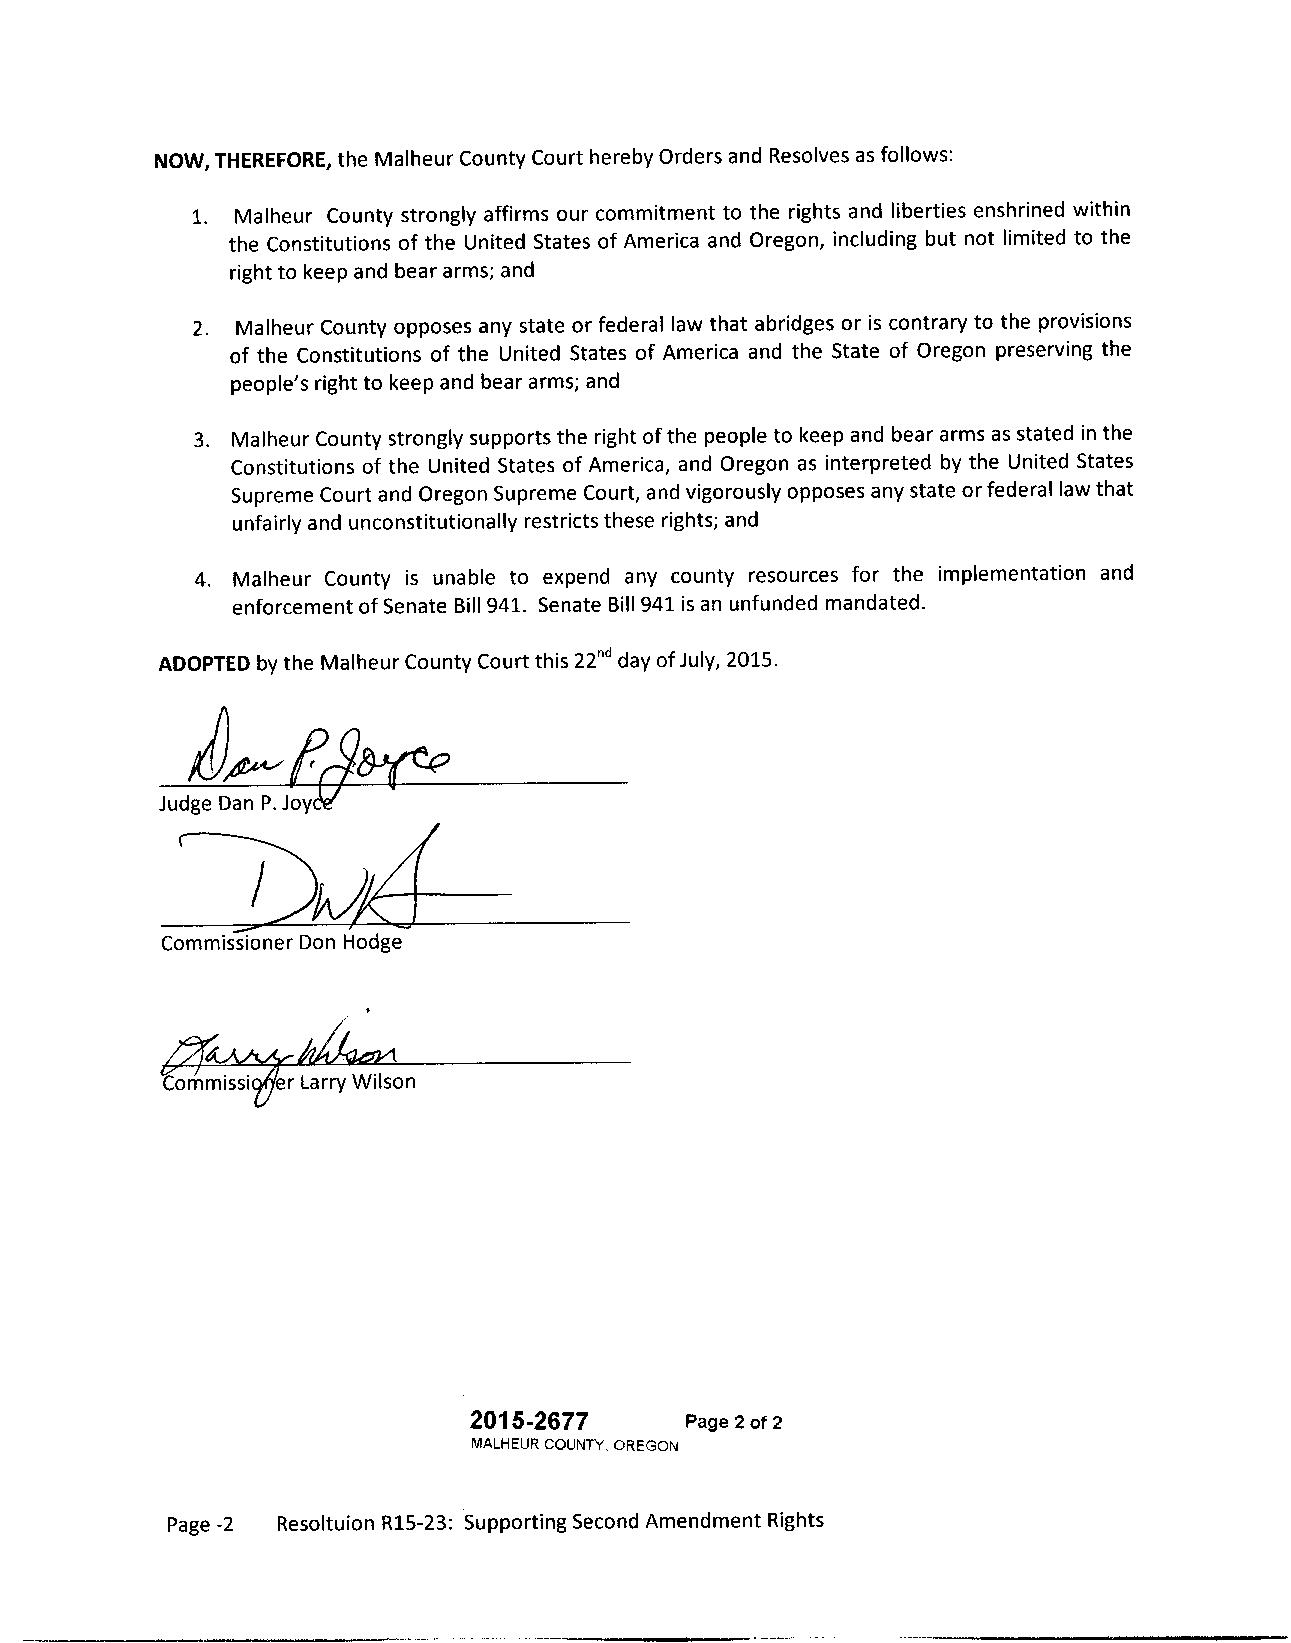 Malheur County Resolution in Support of the Second Amendment page 2